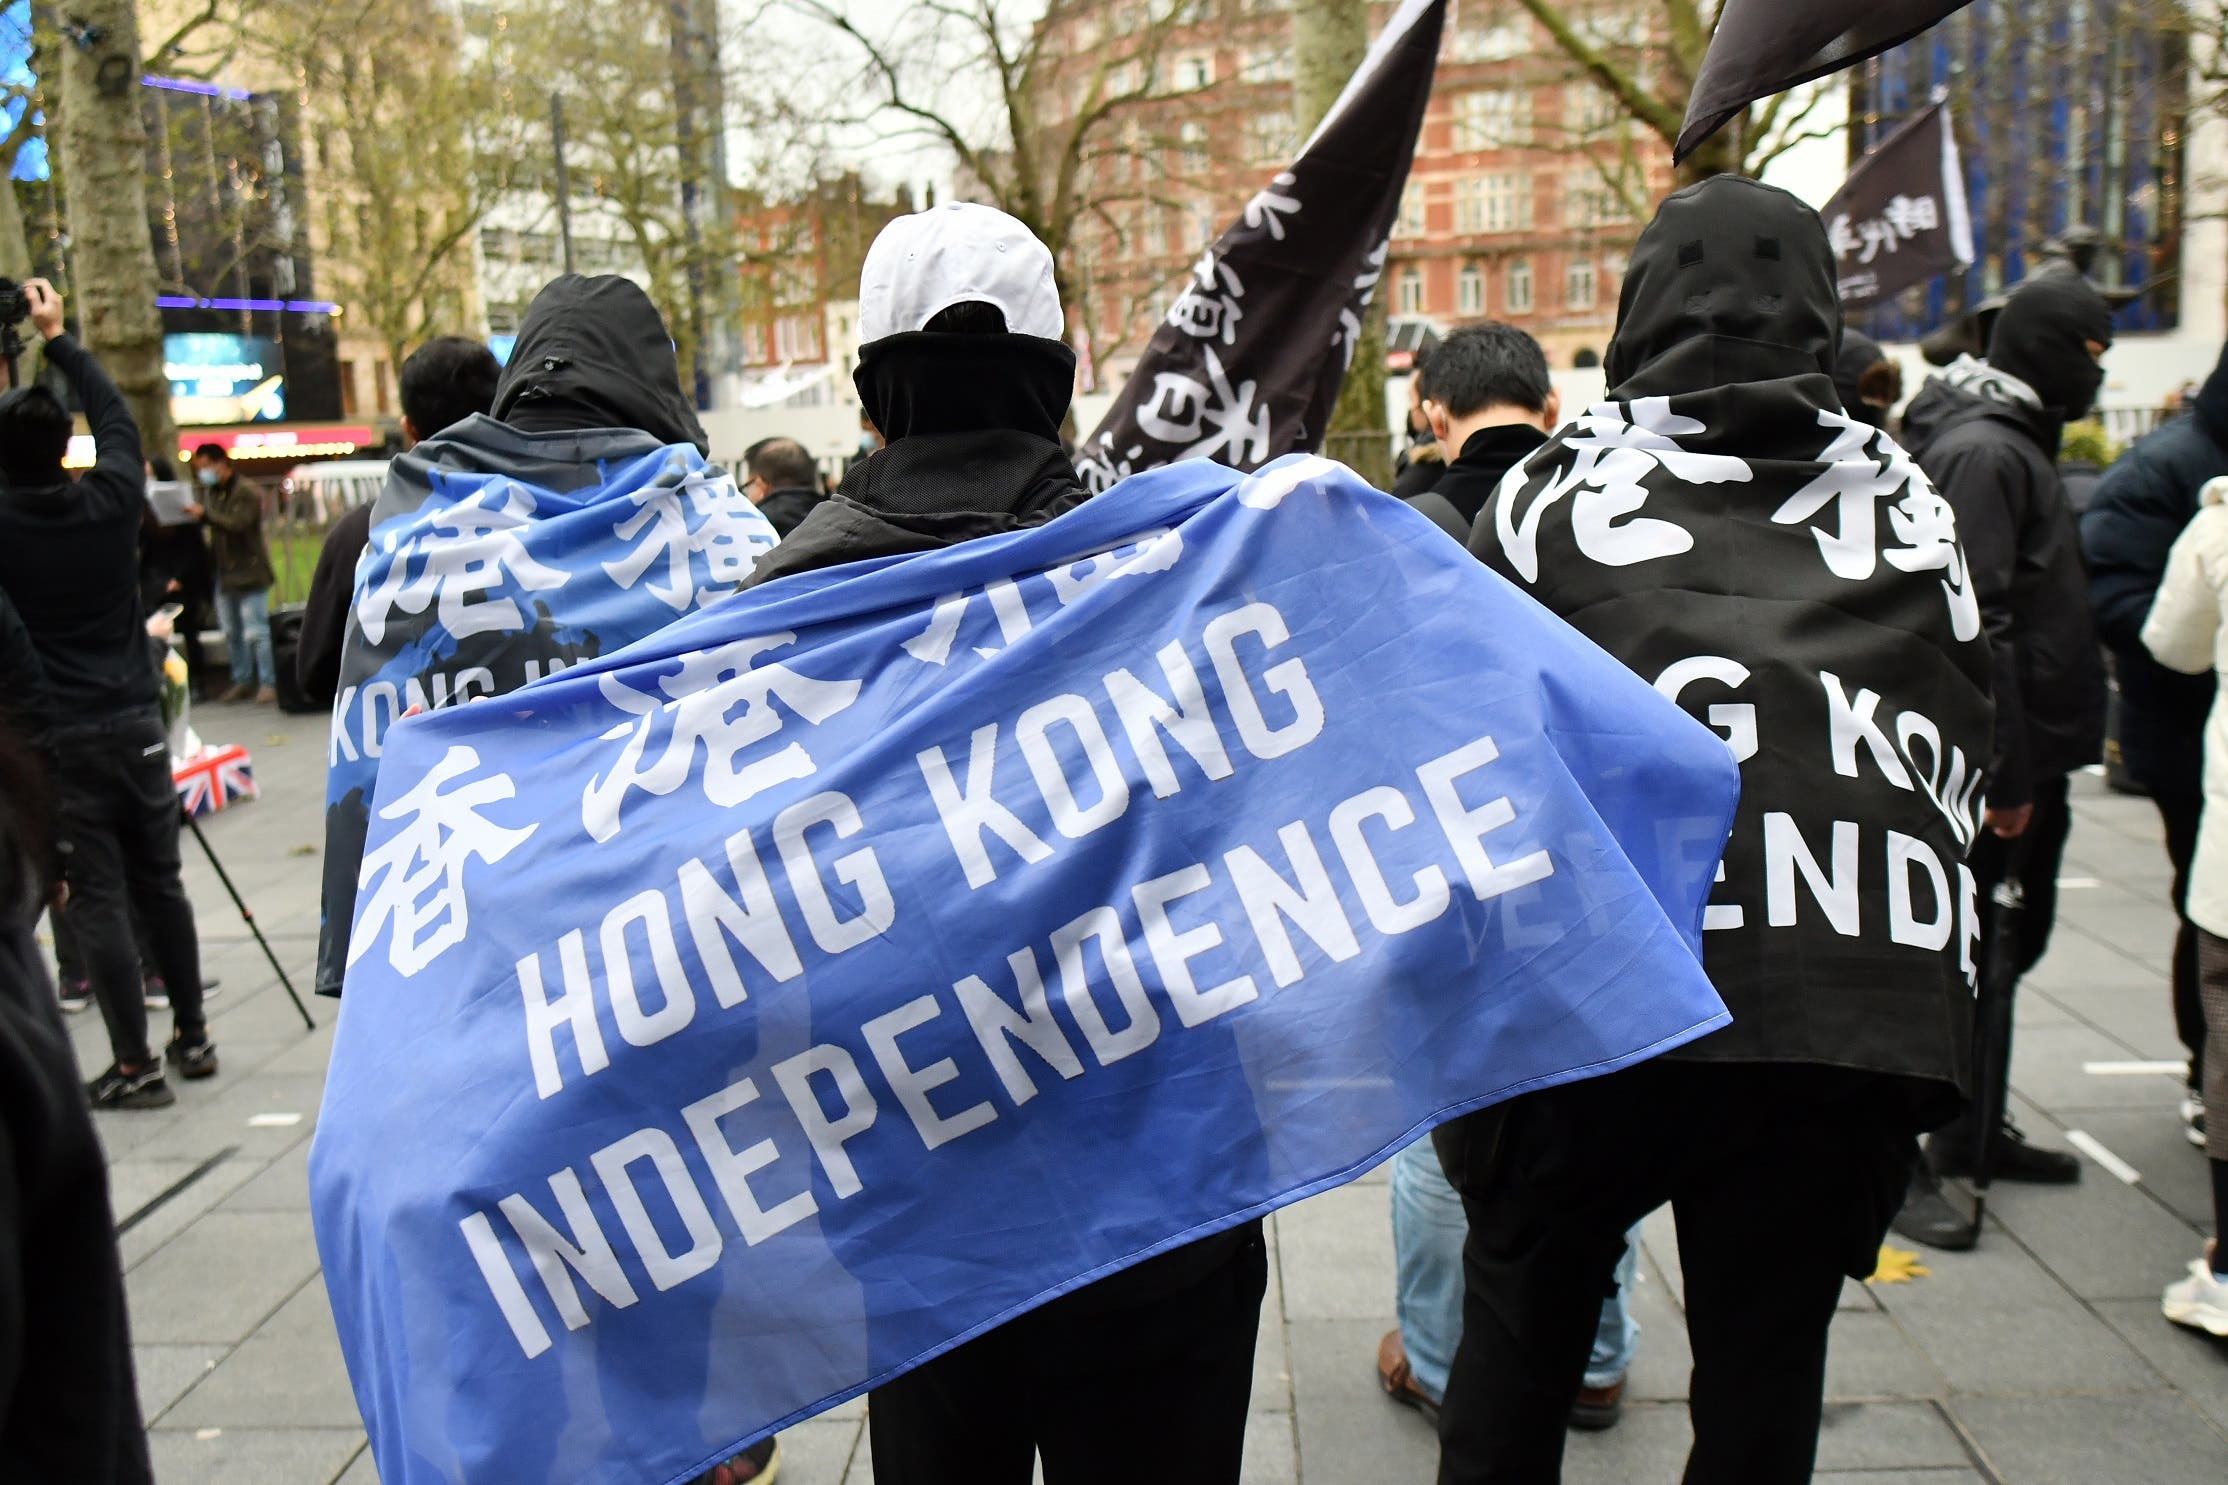 Protesters gather with banners at an event organized by Justitia Hong Kong to mourn the loss of Hong Kong's political freedoms, in Leicester Square, central London on December 12, 2020. (Justin Tallis/AFP)